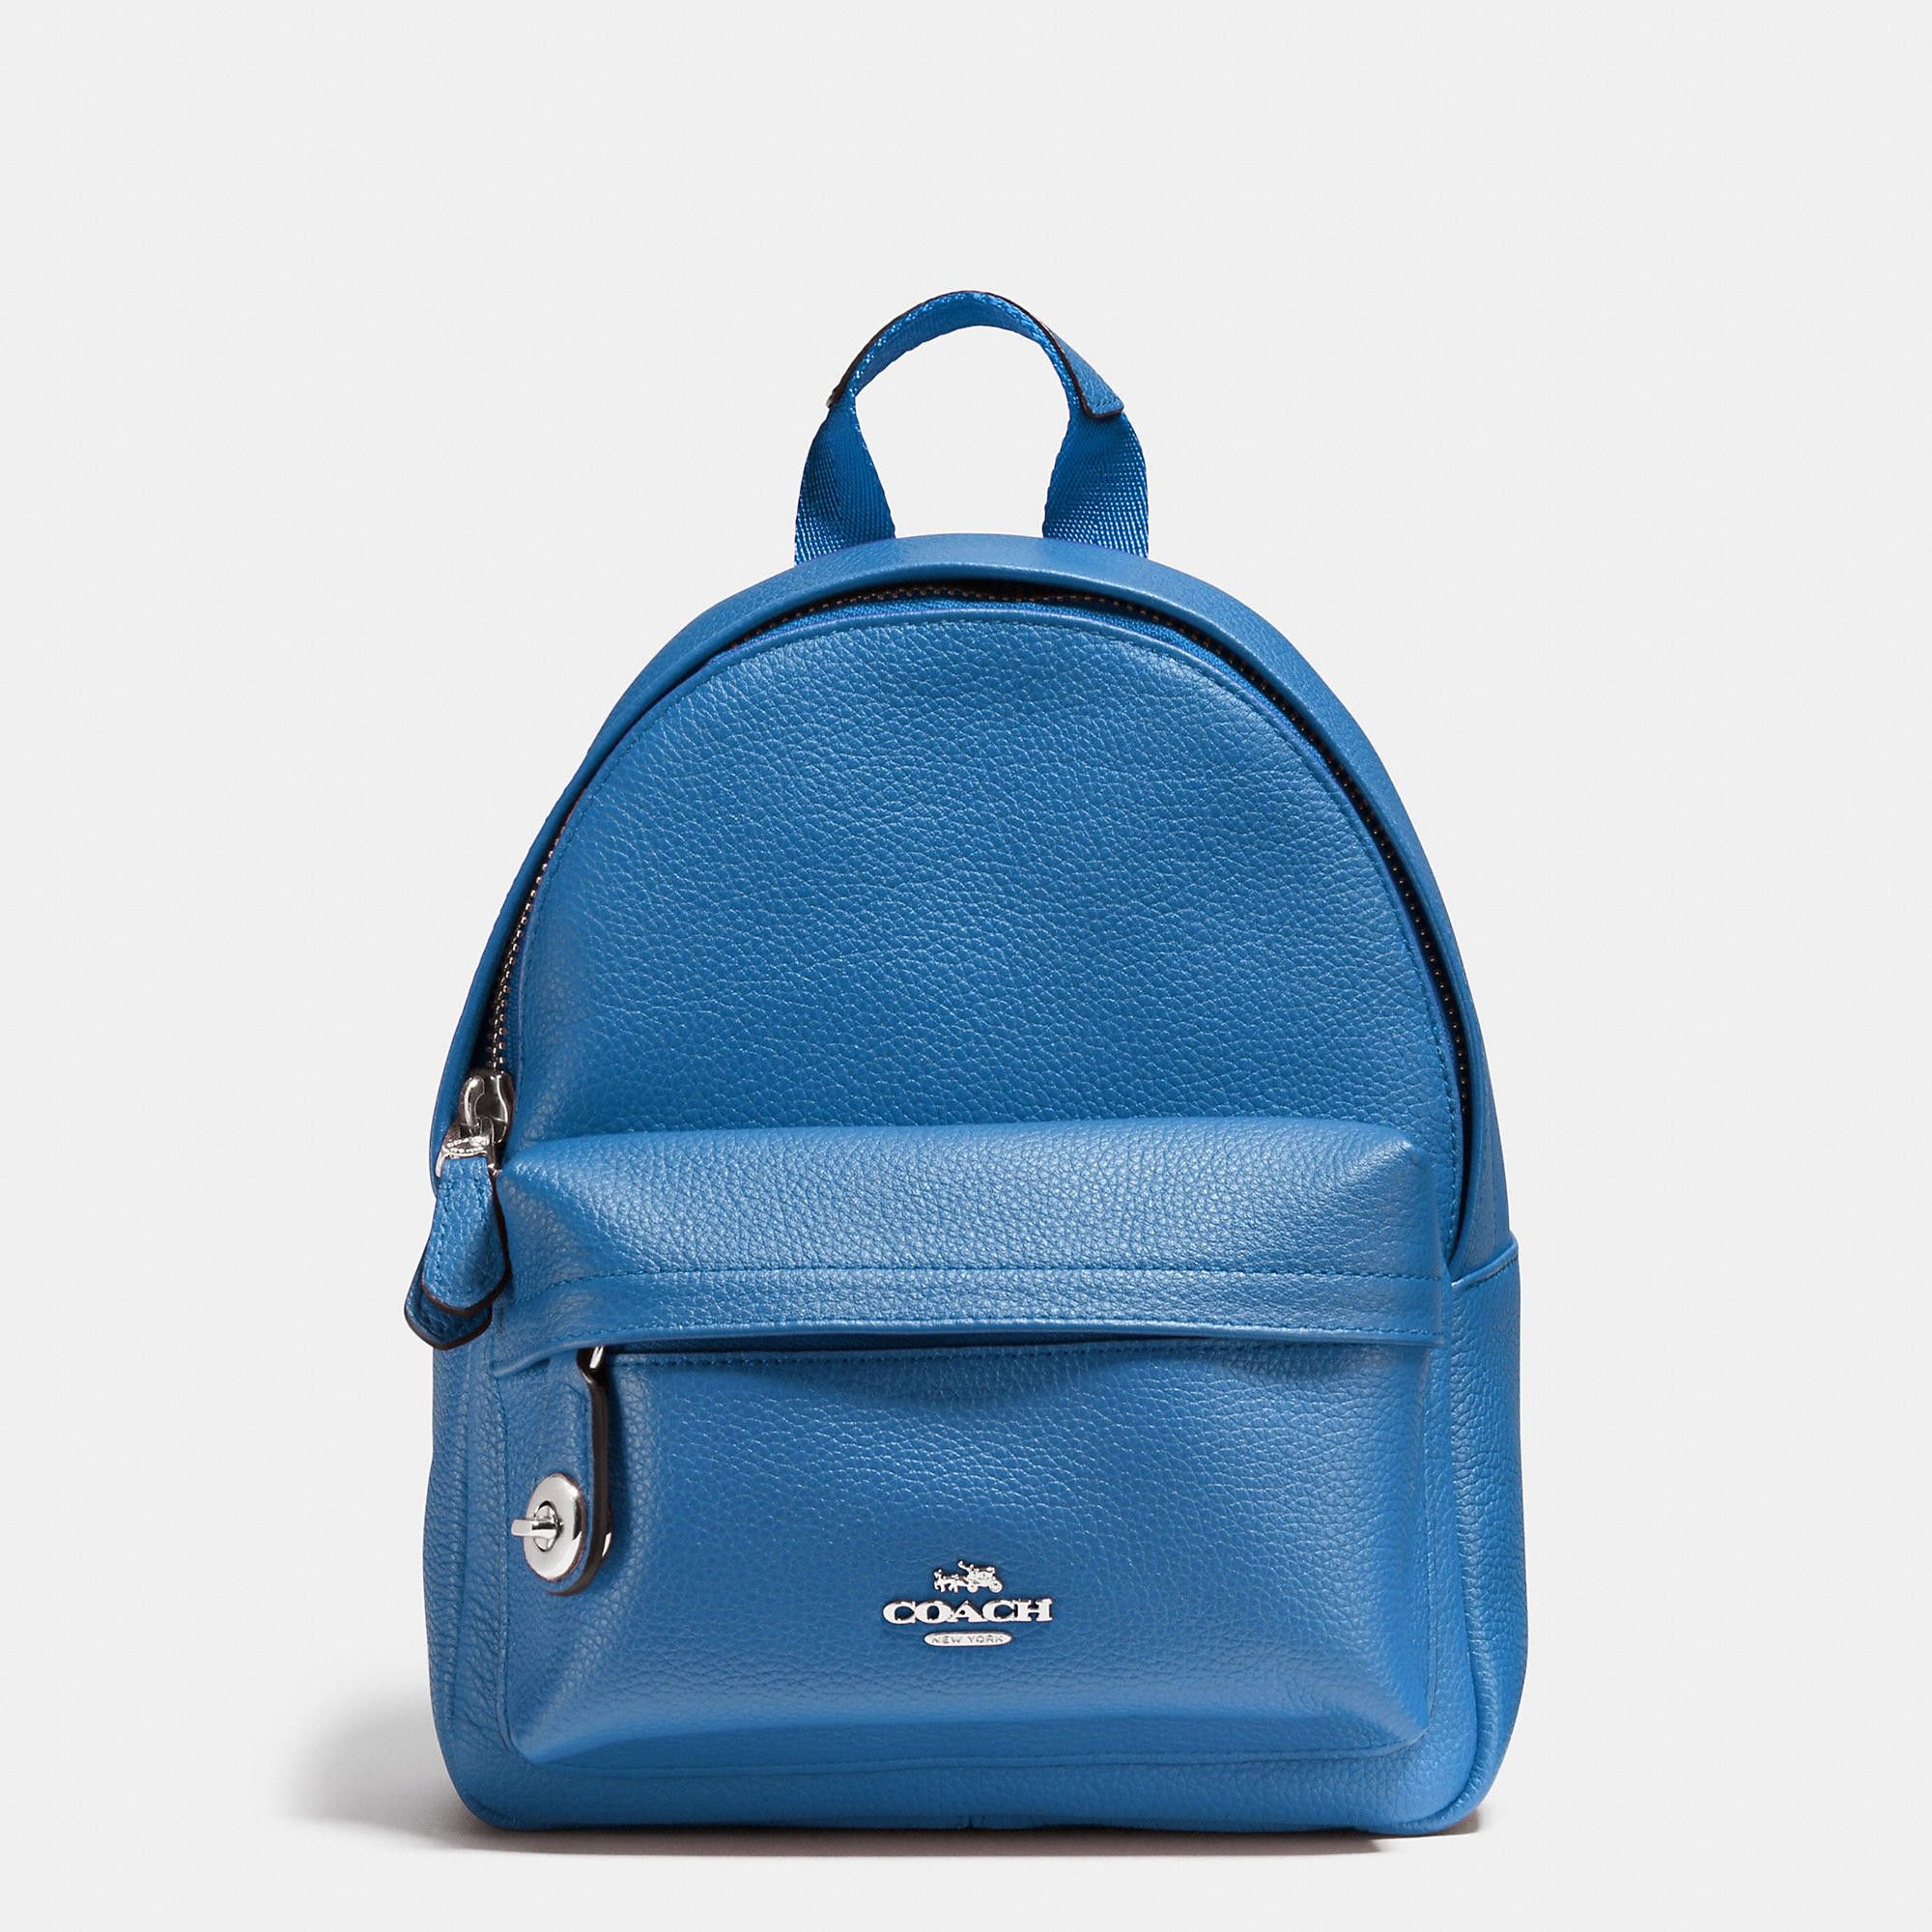 31b241464160 COACH MINI campus backpack in polished pebble leather.  coach  bags  leather   lining  backpacks